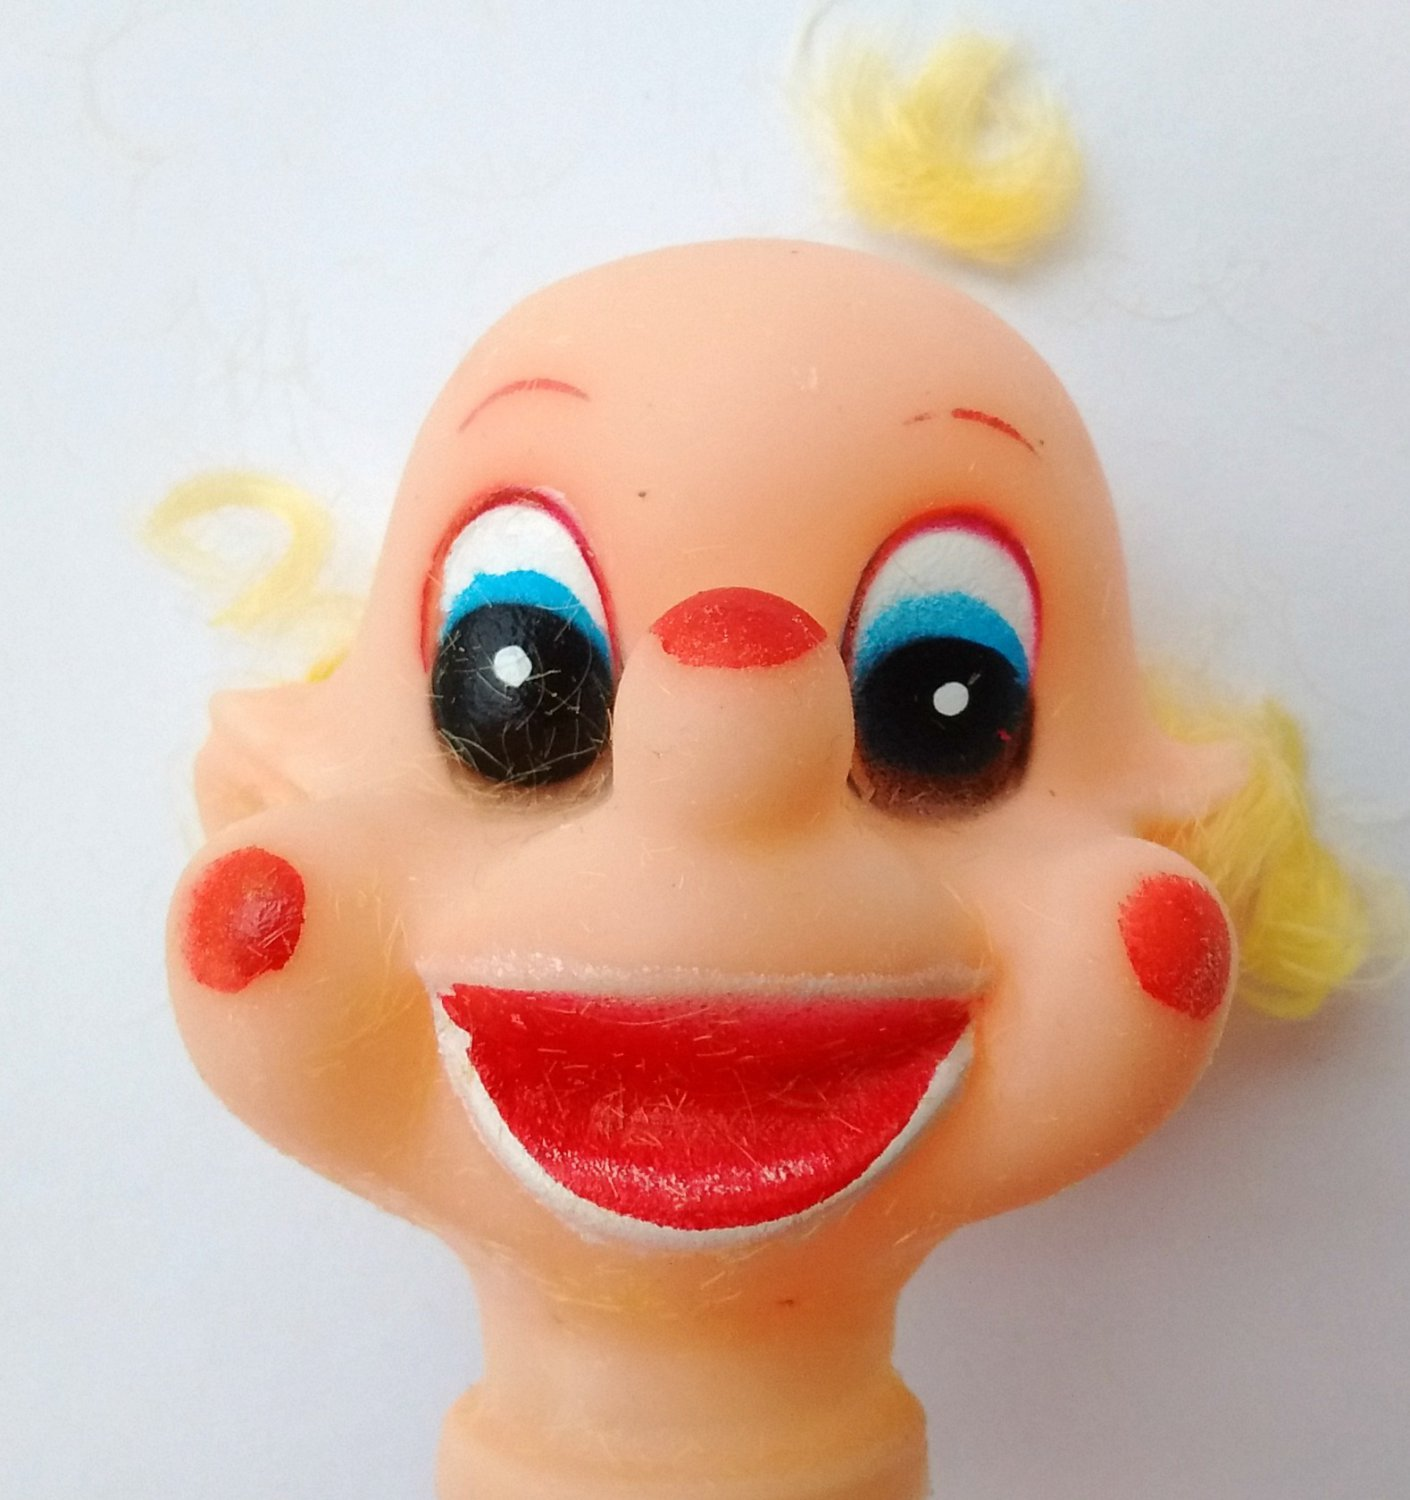 Terrifying Vinyl Doll Head Caucasian for Clown Elf or some other horror New, Old Stock 1970s